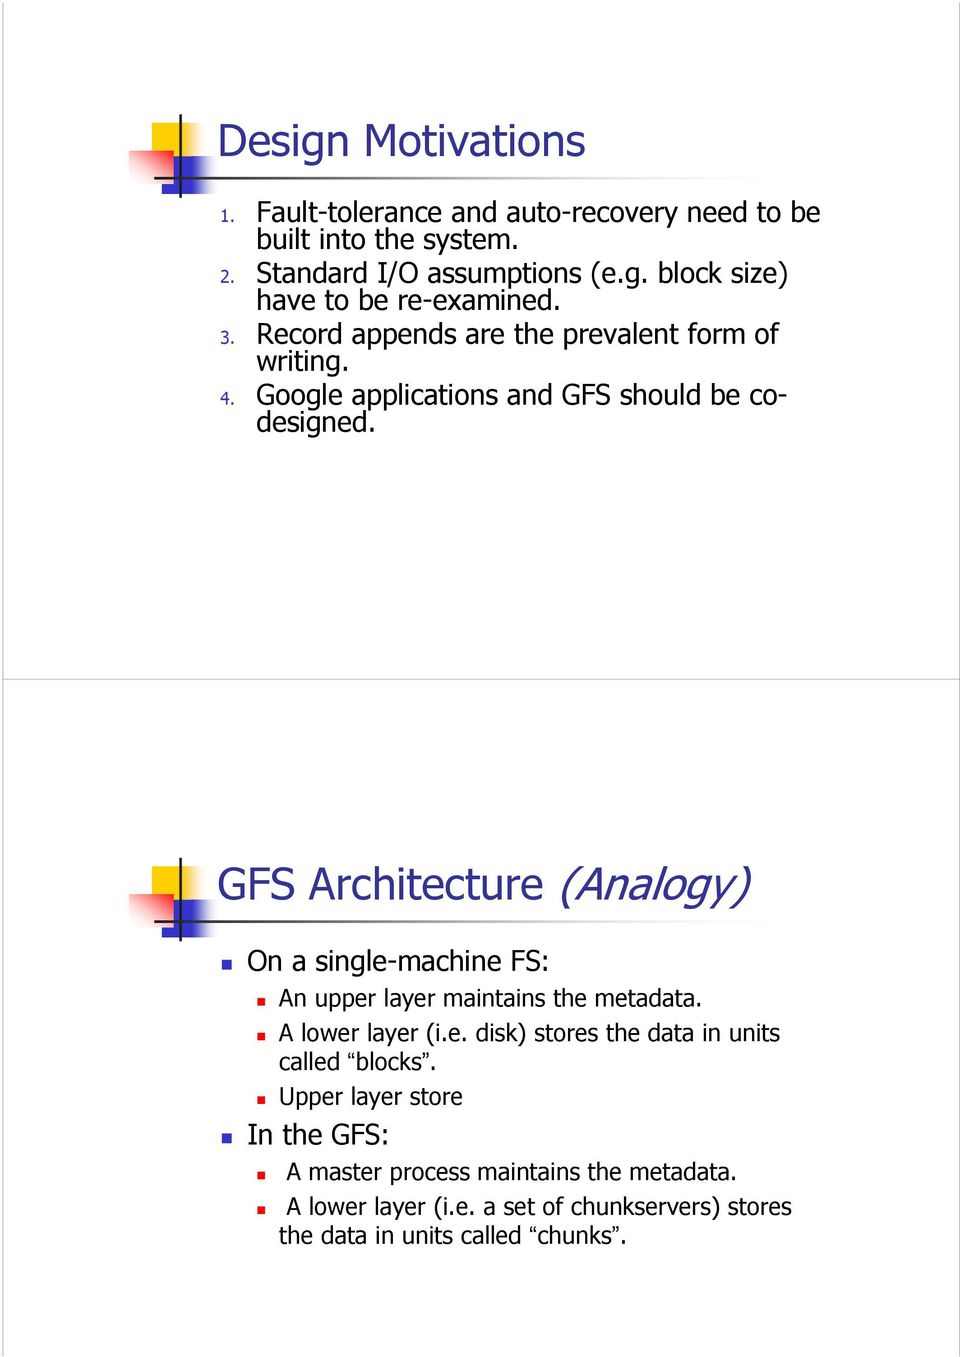 GFS Architecture (Analogy) On a single-machine FS: An upper layer maintains the metadata. A lower layer (i.e. disk) stores the data in units called blocks.